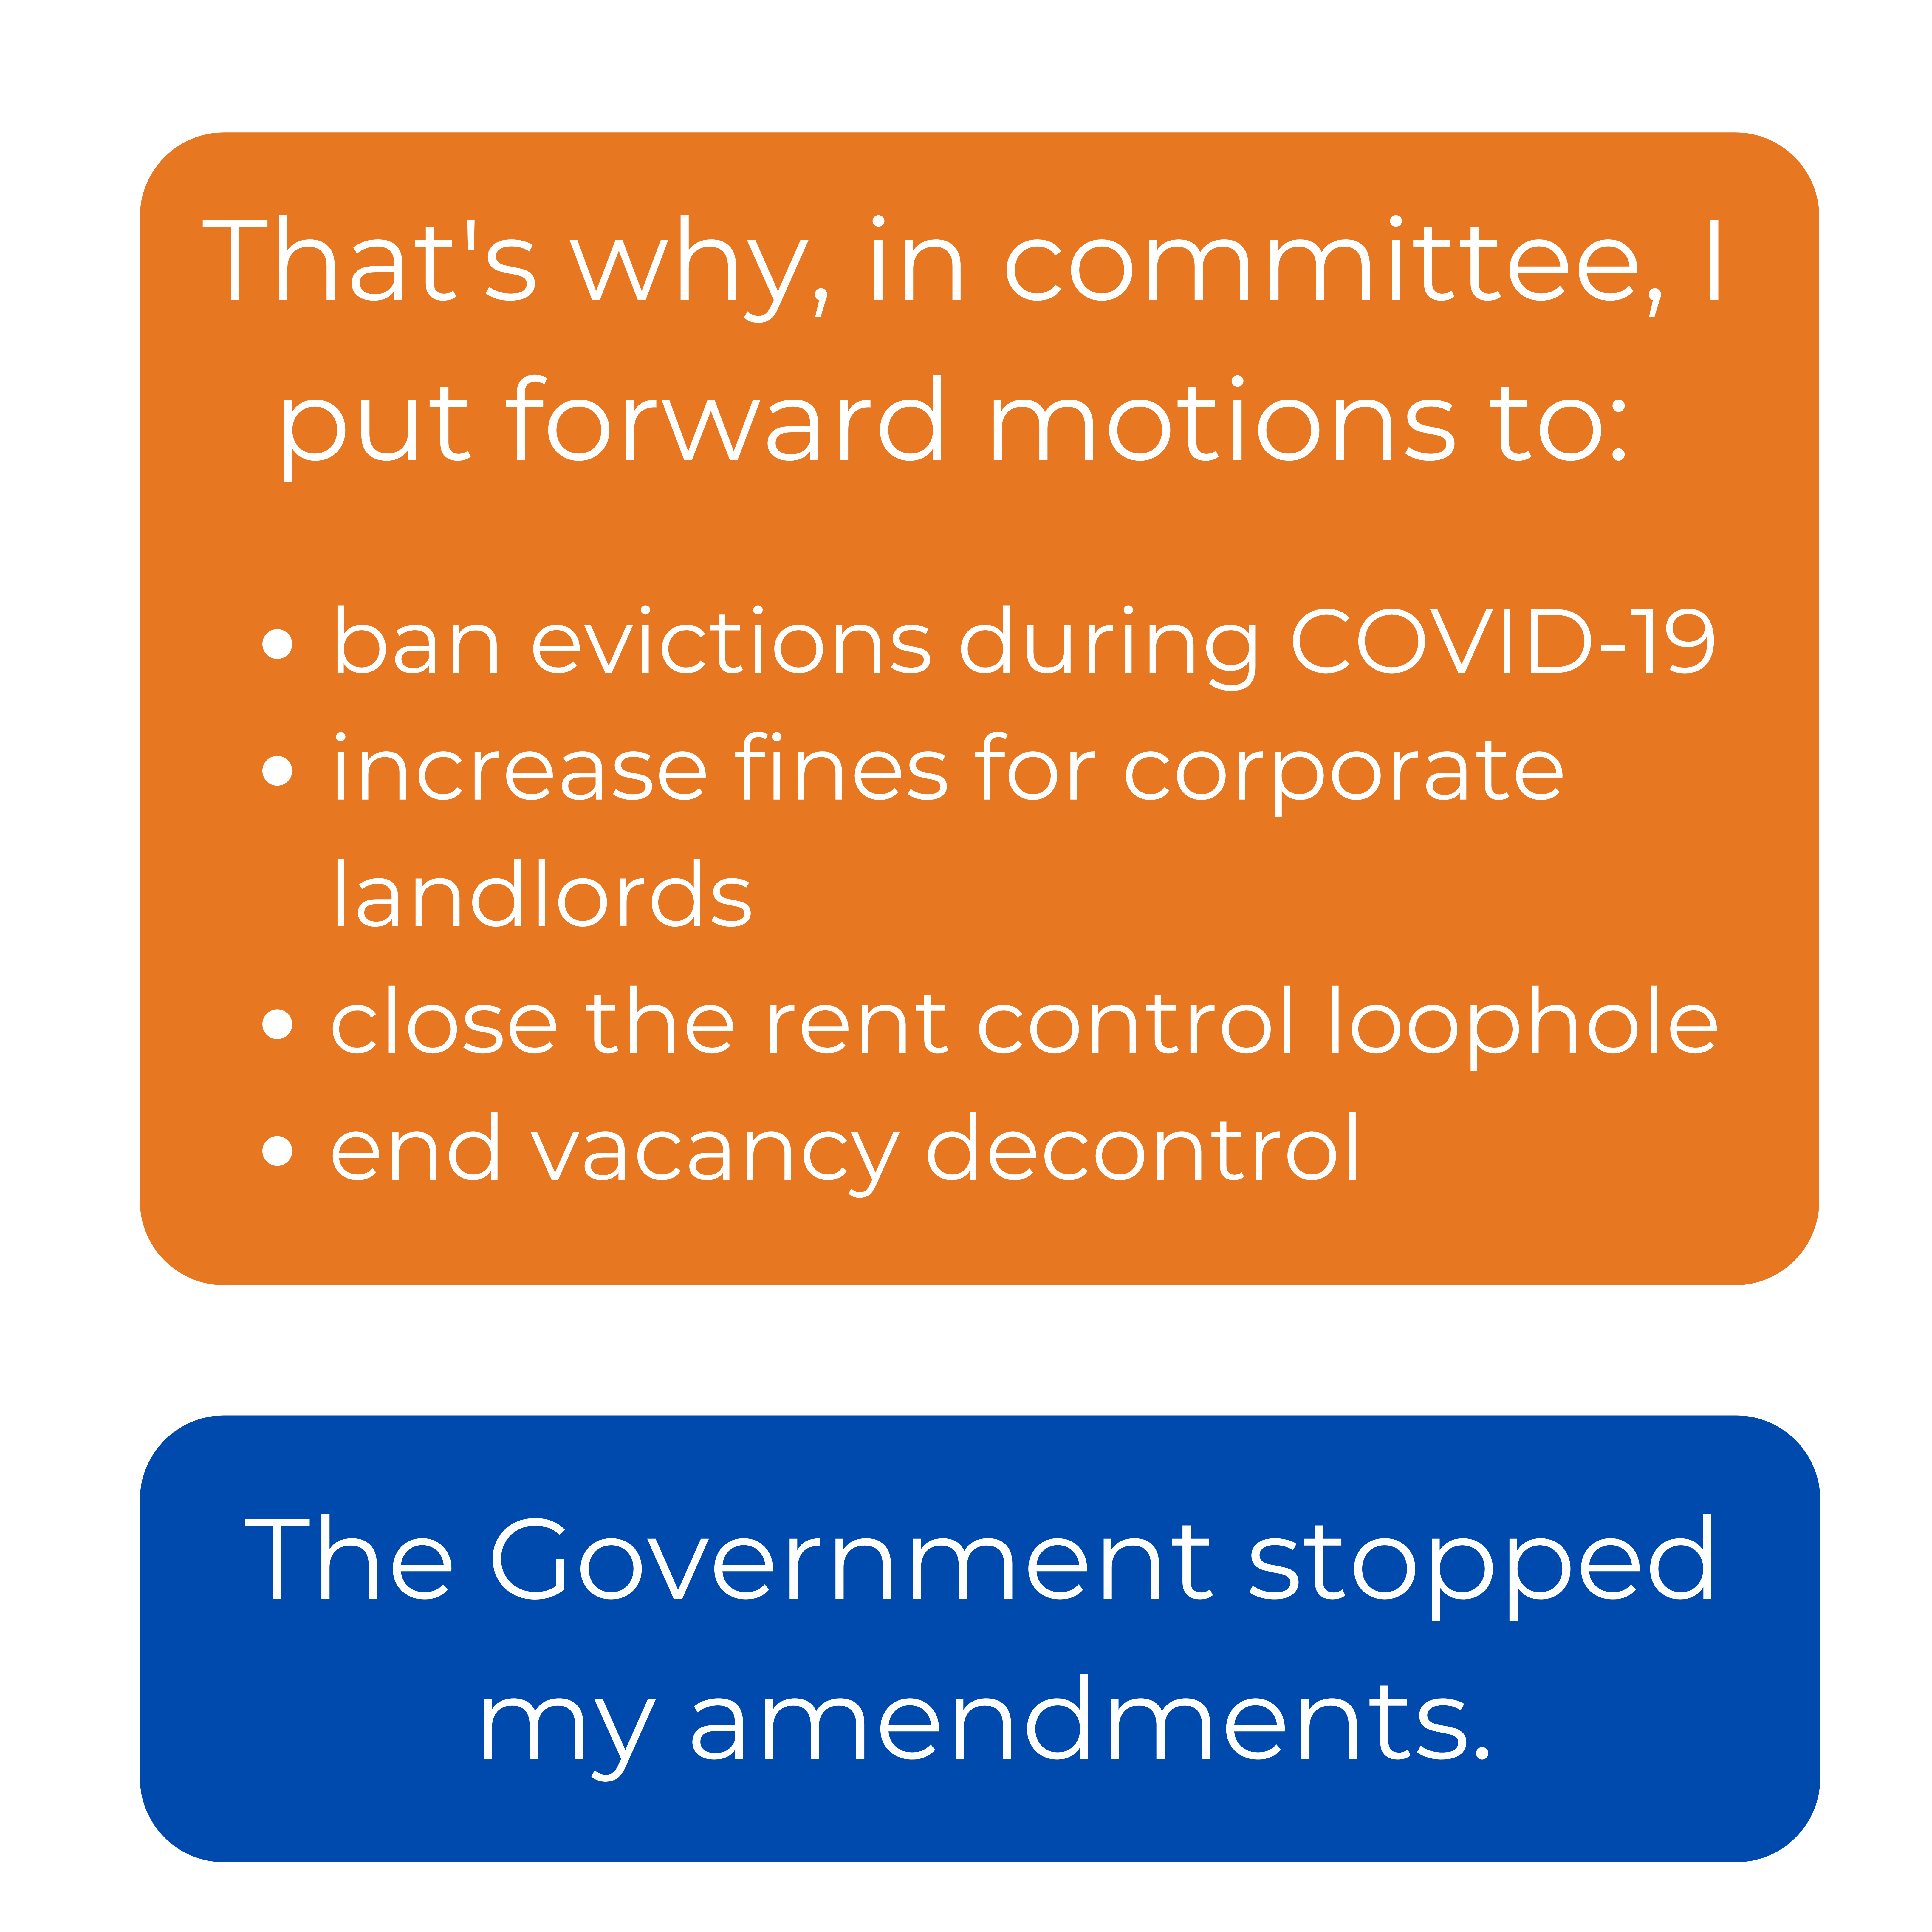 That's why, in committee, I put forward motions to: ban evictions during COVID-19 increase fines for corporate landlords close the rent control loophole end vacancy decontrol. The Government stopped my amendments.